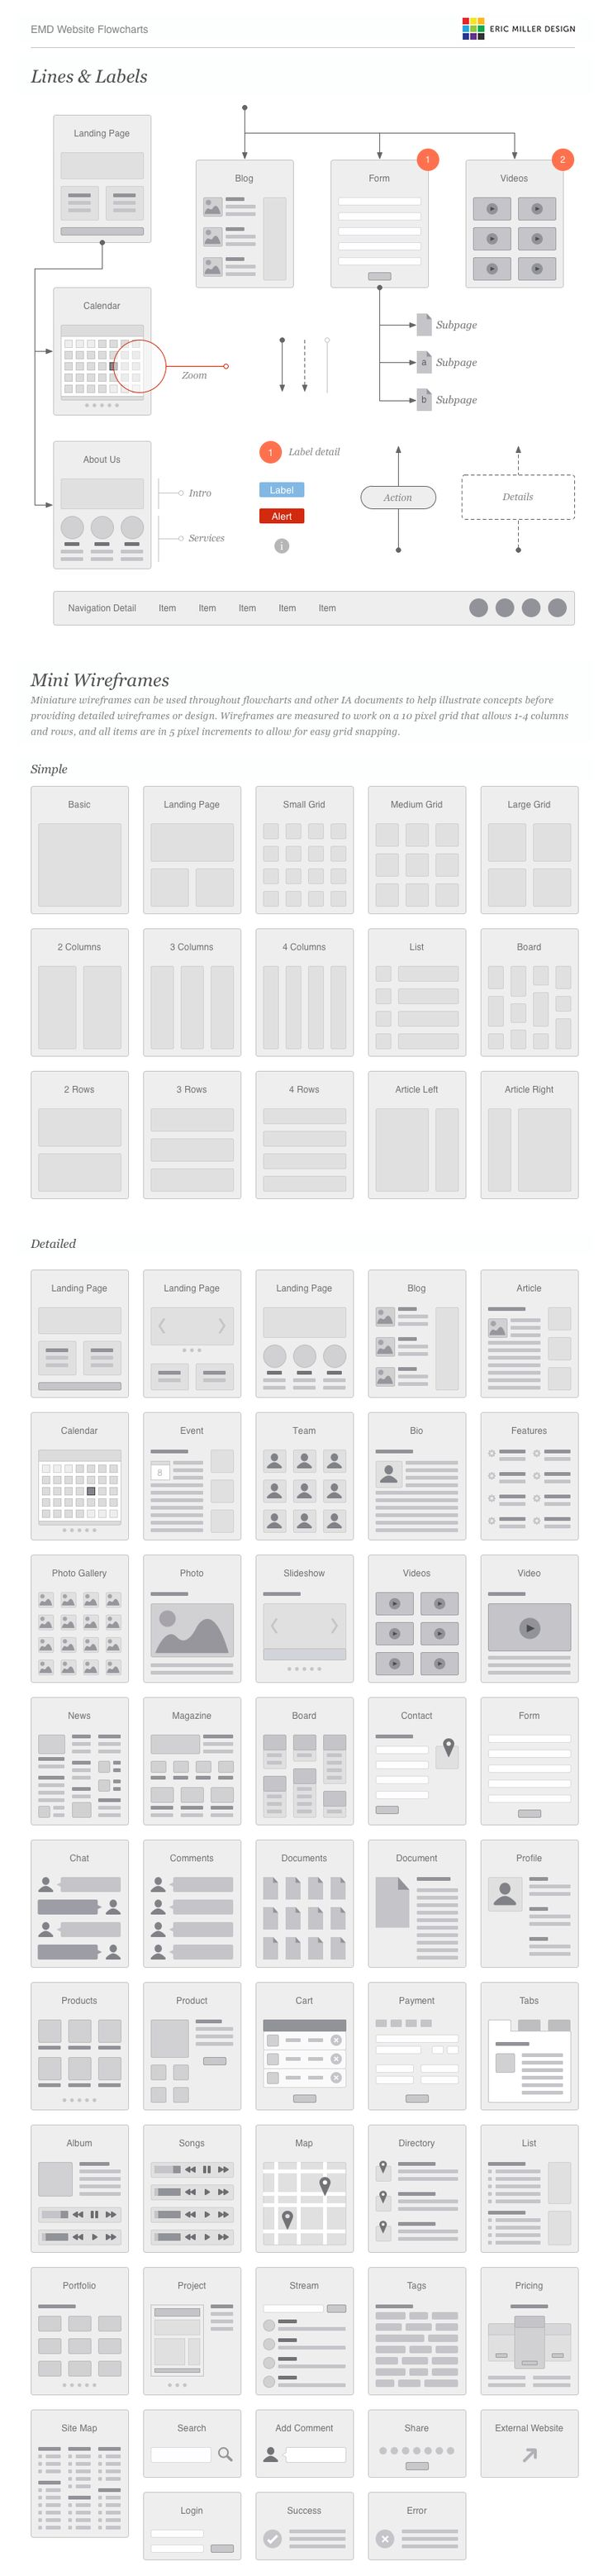 POUR TOUT COMPRENDRE NIV. PLANCHE  Preview for Website Flowcharts